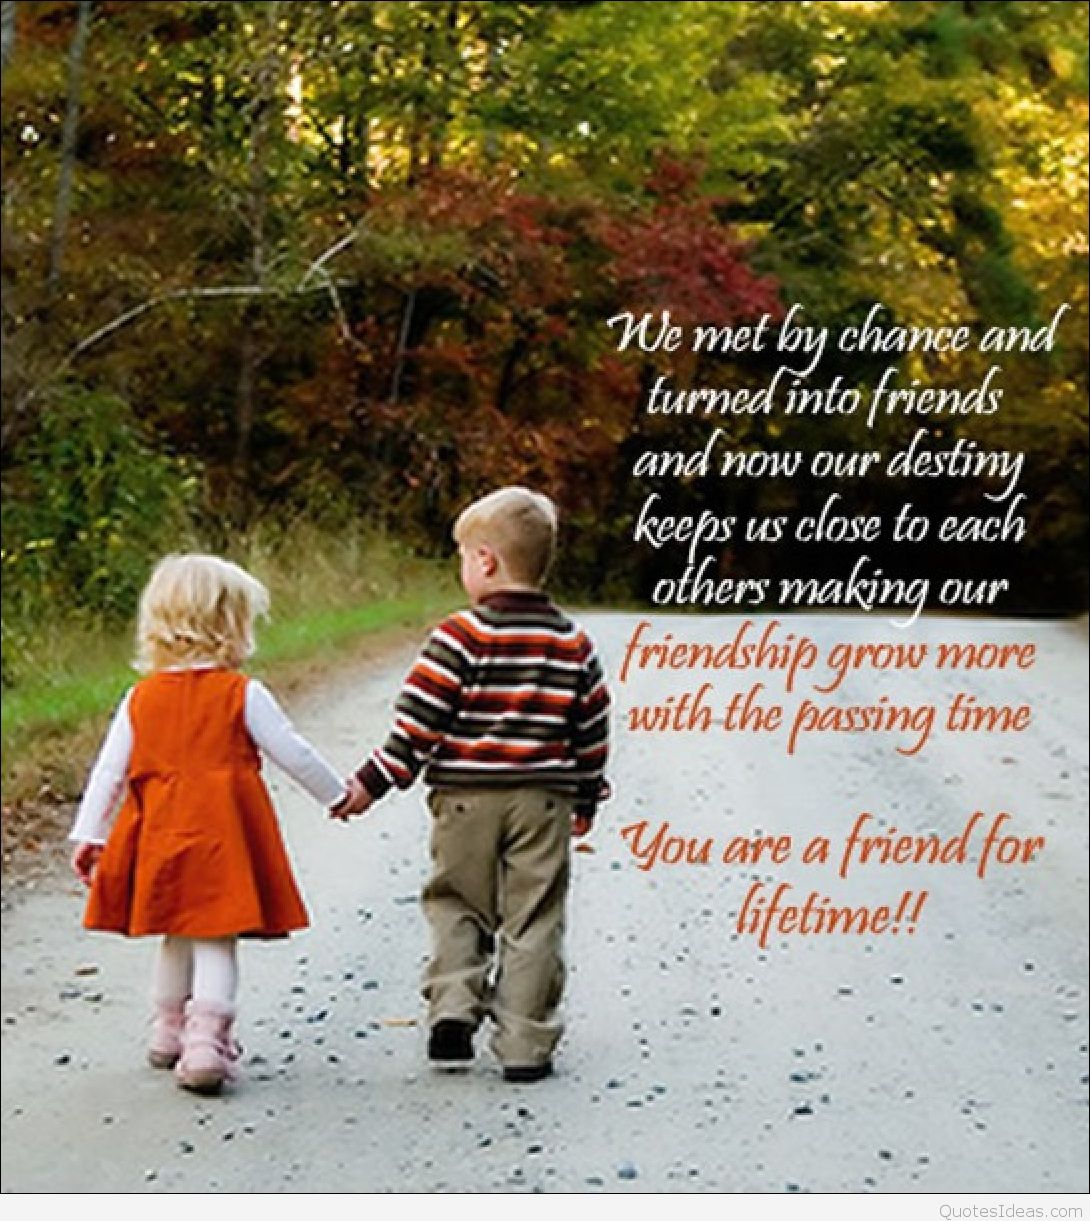 Quotes About Fighting For Friendship Friendship Day Quotes Wallpapers And Photos In High Quality 1090X1221